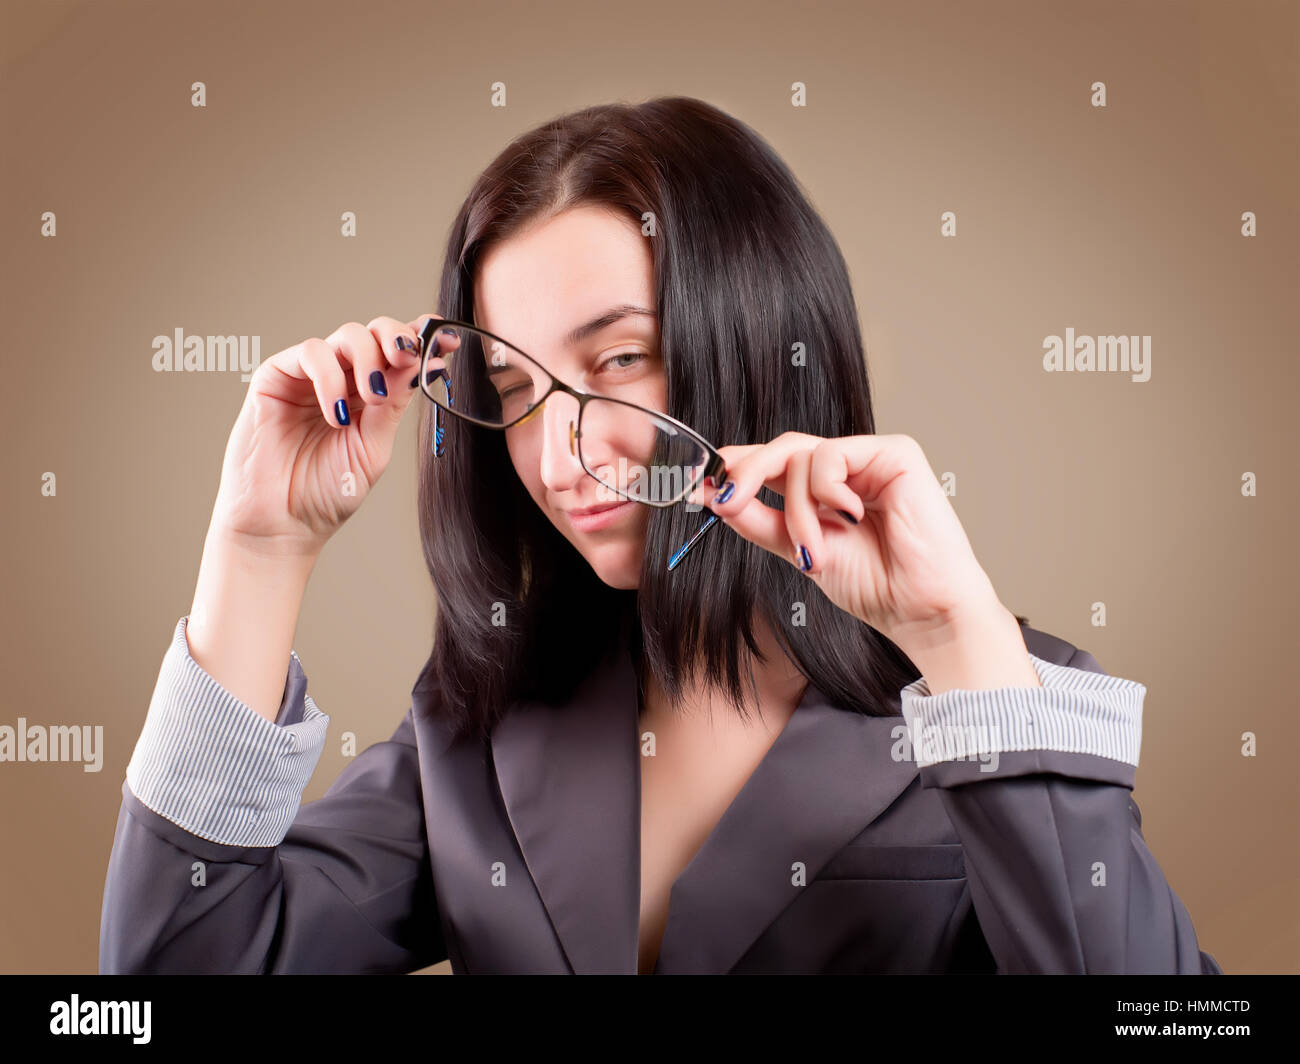 Malicious or tricky girl looking through the glasses. Studio shoot on brown background - Stock Image